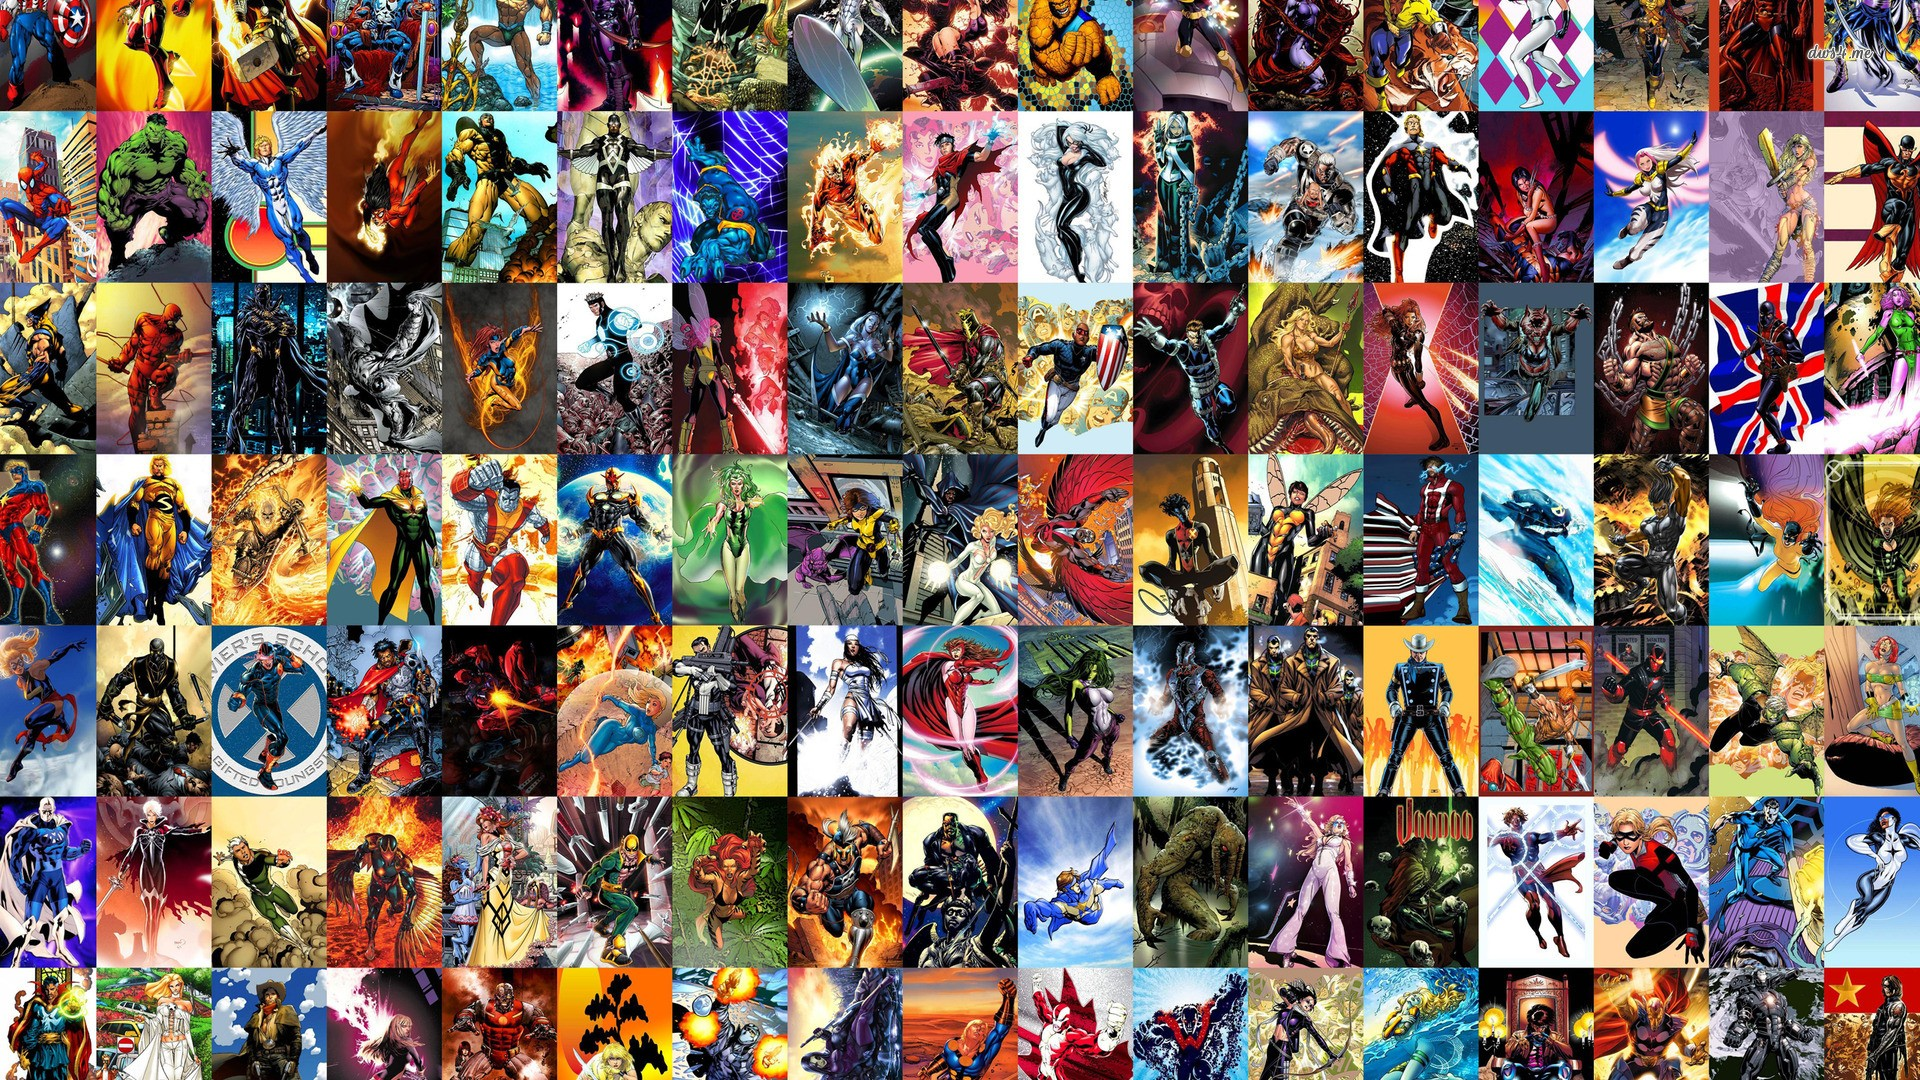 General 1920x1080 Marvel Comics Spider-Man Hulk The Punisher Ms. Marvel Moon Knight Daredevil Scarlet Witch Wolverine Captain America Iron Man Thor Hawkeye Silver Surfer Black Cat (character) Black Panther Black Widow The Vision Ghost Rider Deadpool Nick Fury She-Hulk Iron Fist Doctor Strange Gambit War Machine